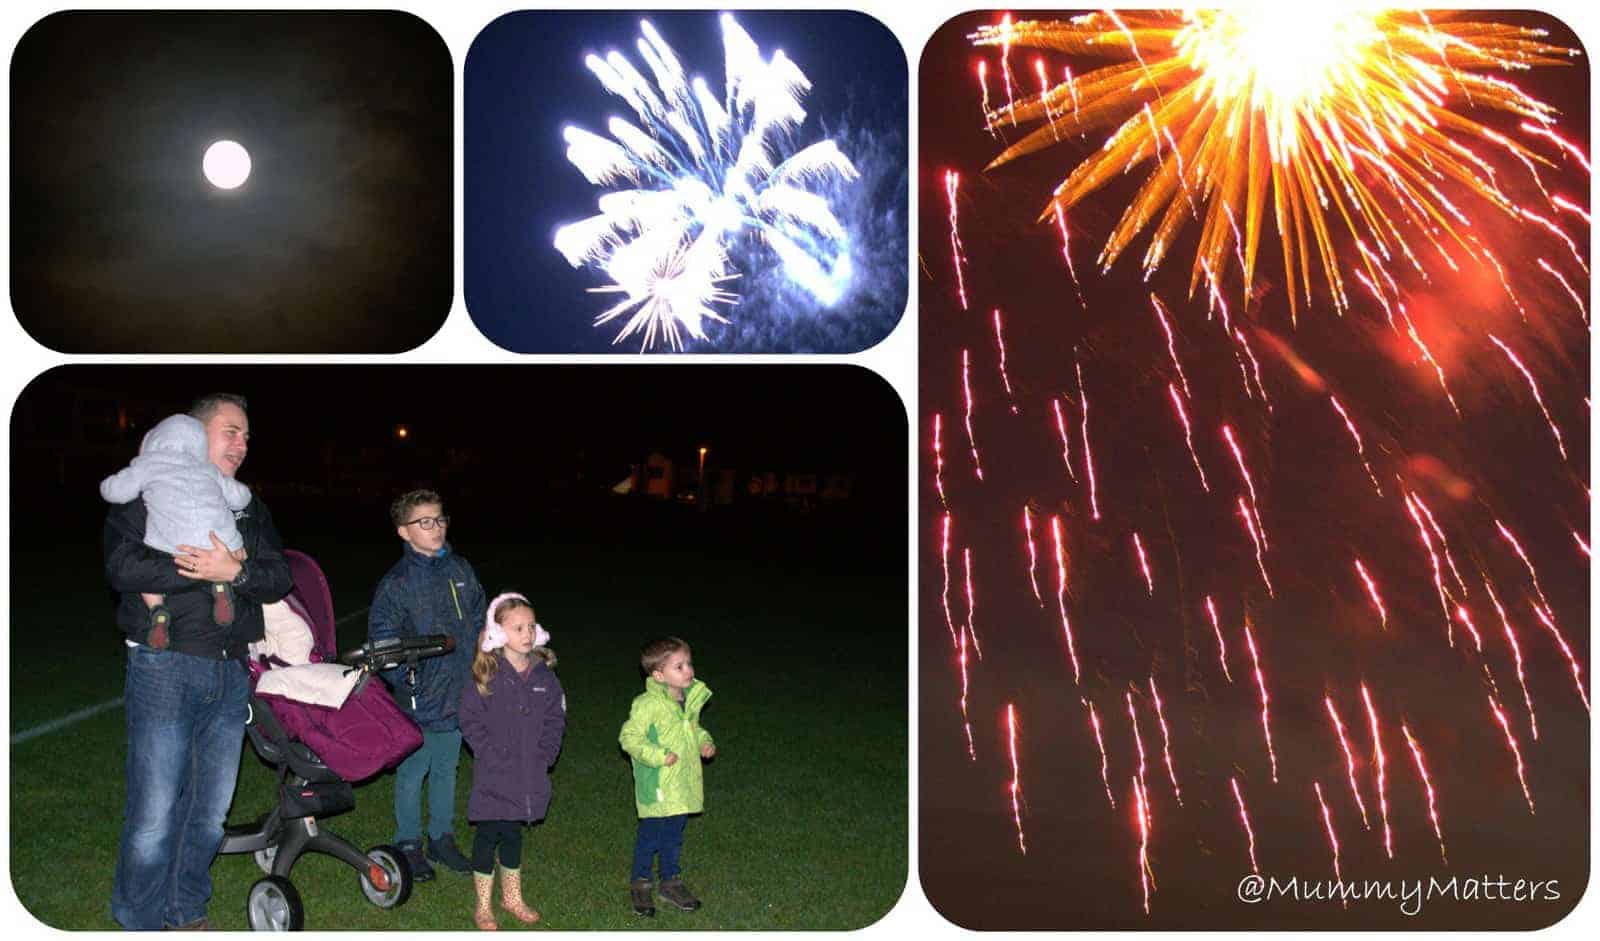 Fireworks Night 2014 – what did Jelly Bean think?